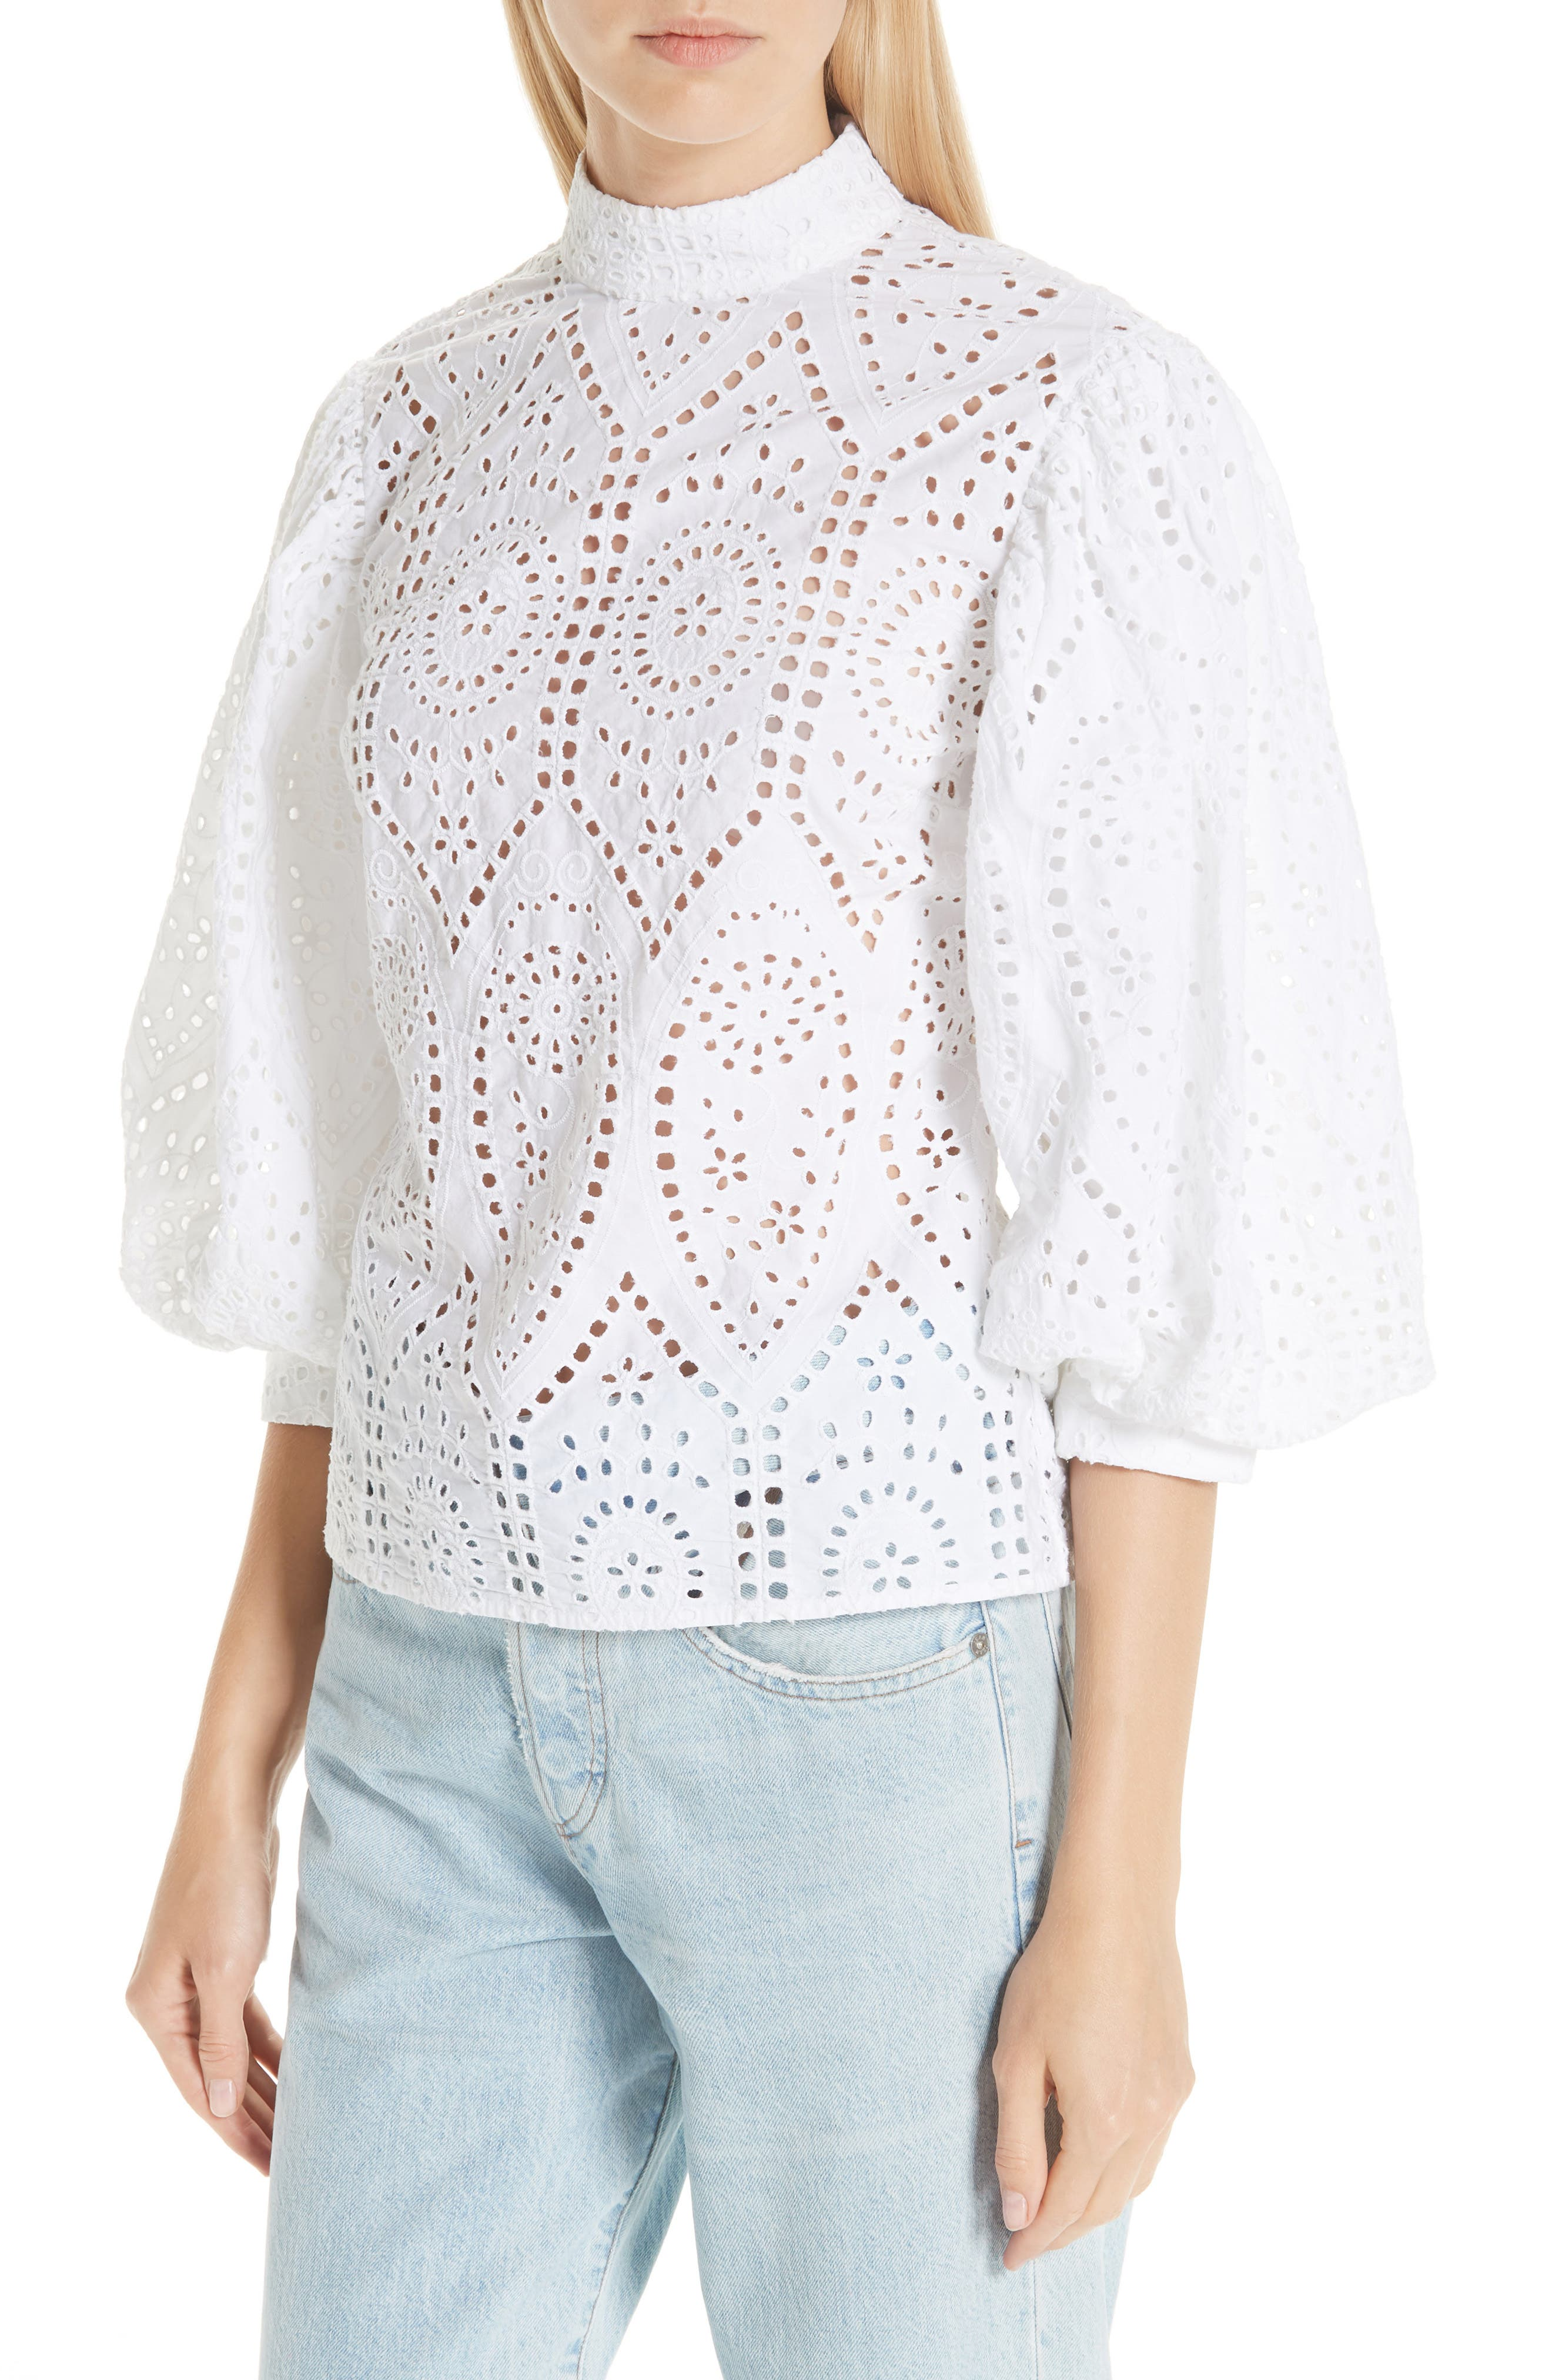 Broderie Anglaise Shirt,                             Alternate thumbnail 4, color,                             BRIGHT WHITE 151